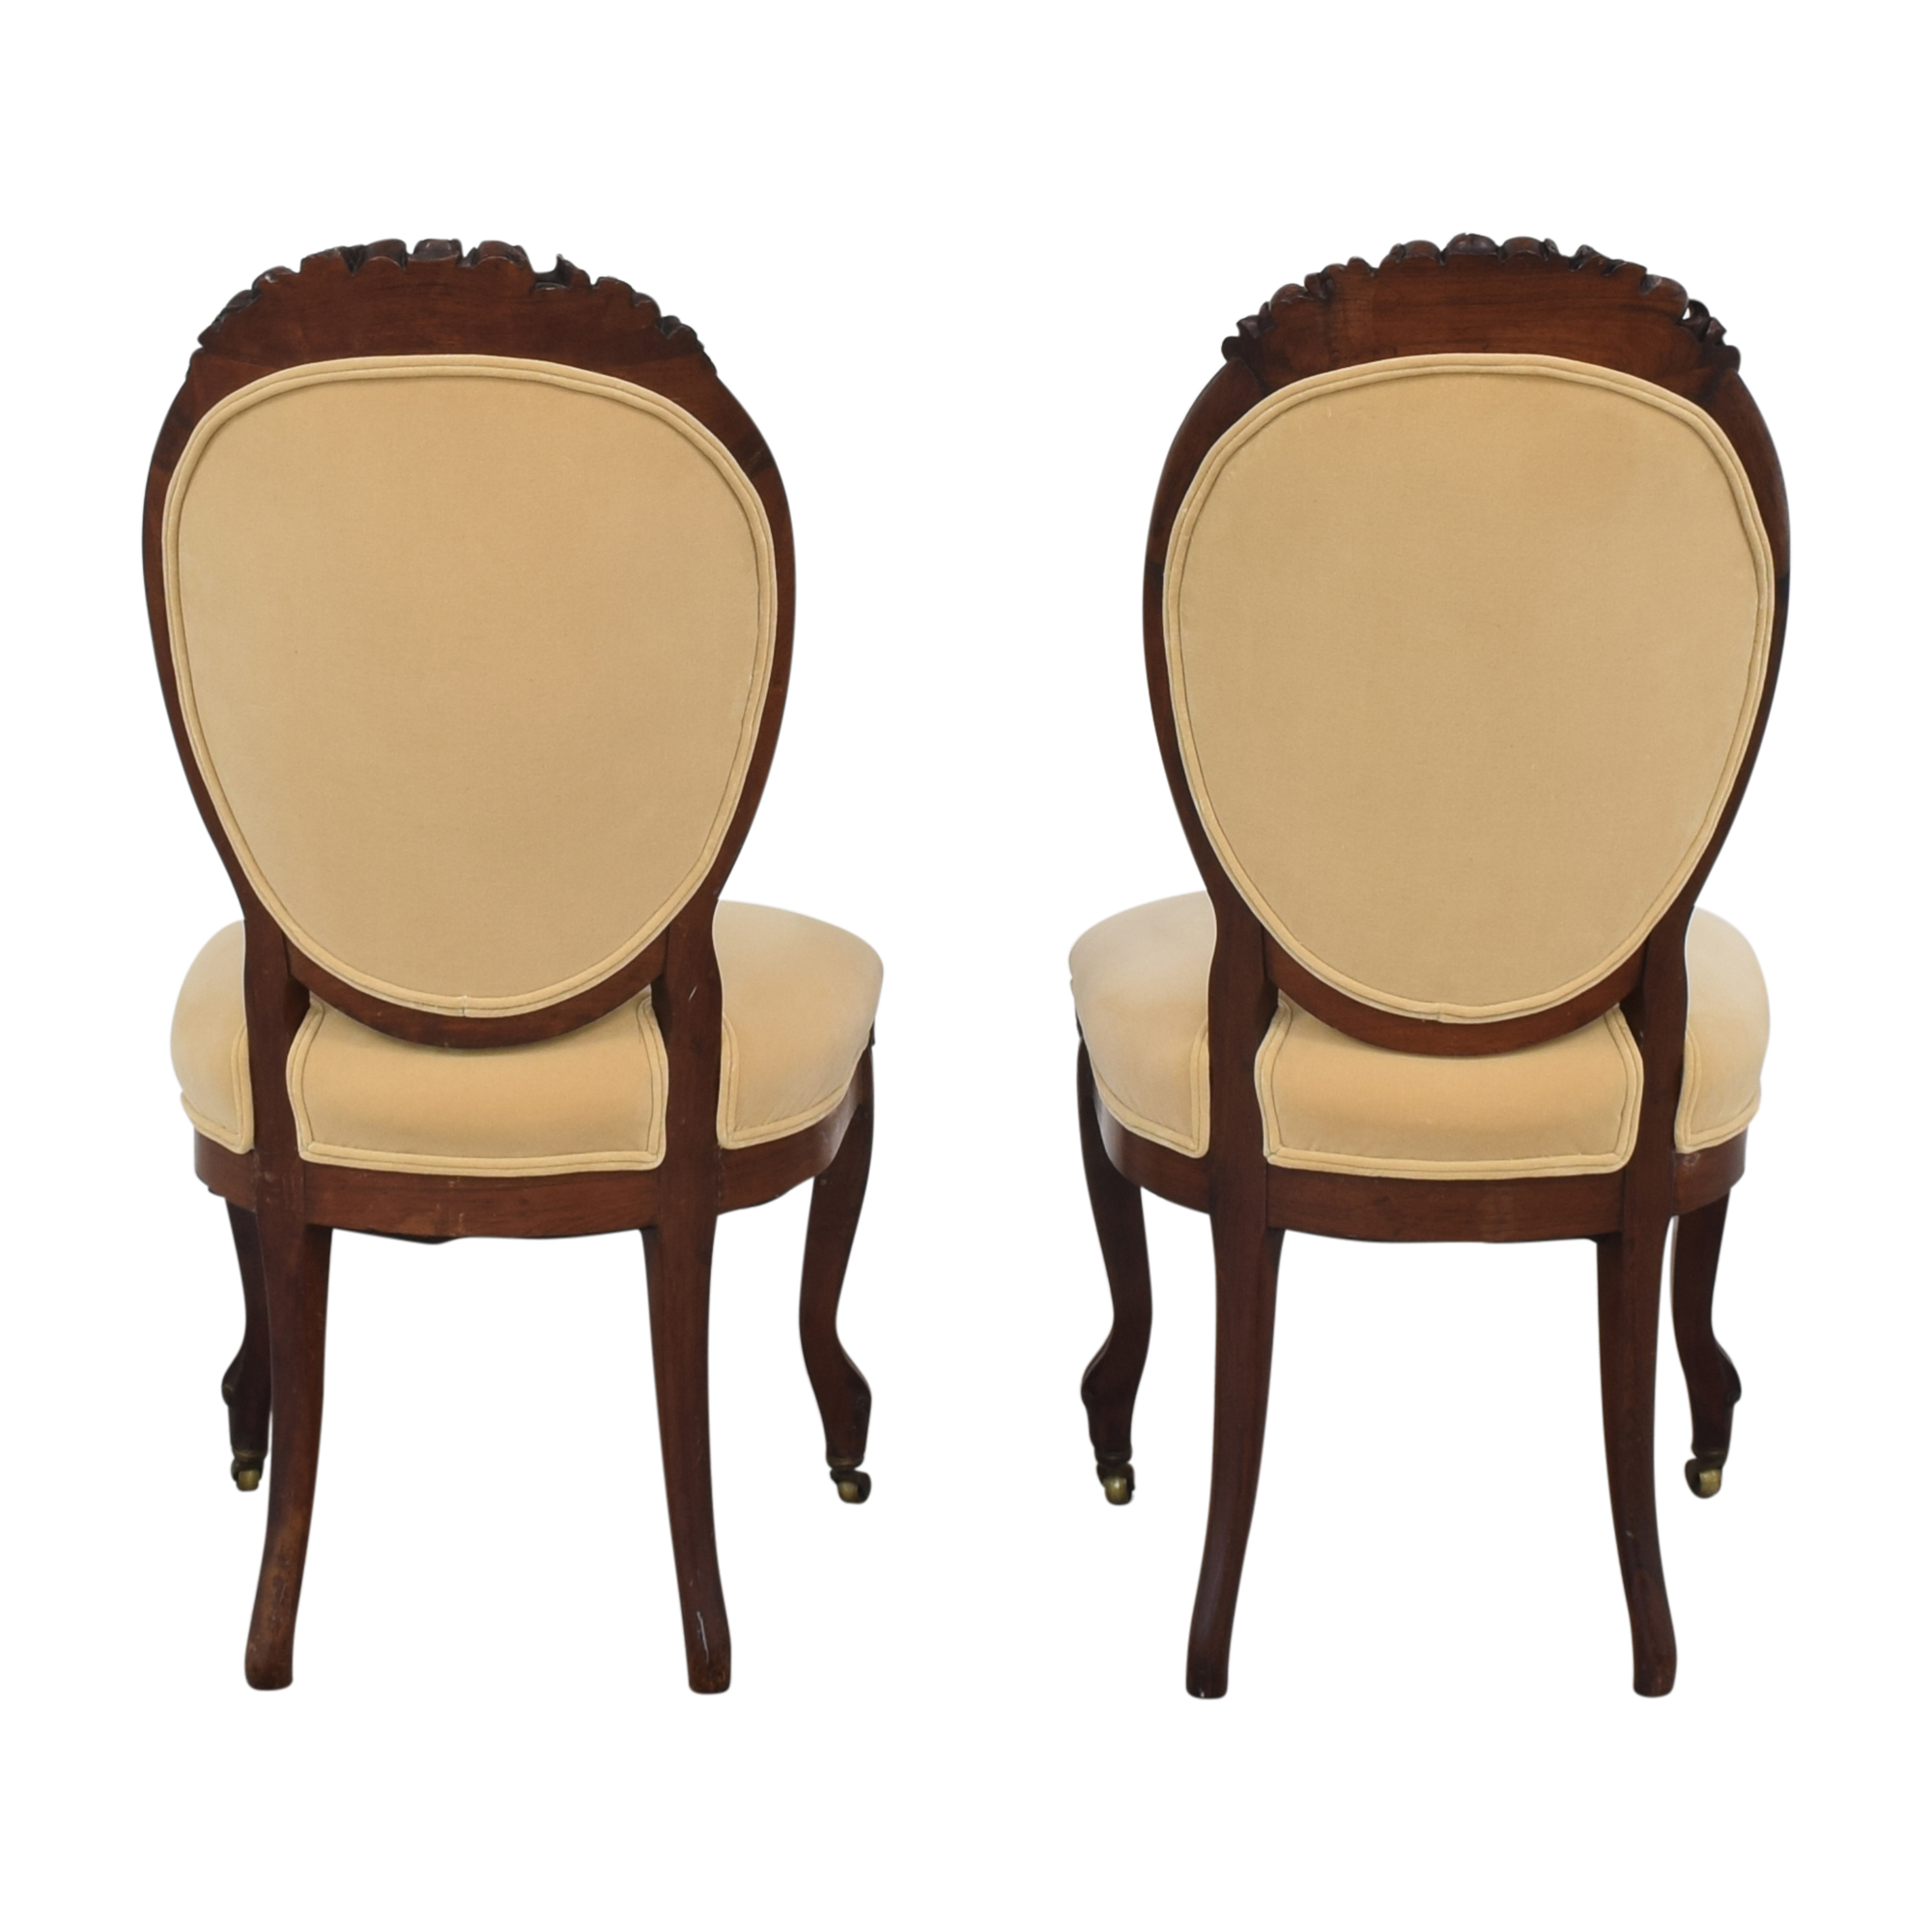 Rounded Back Upholstered Side Chairs / Chairs